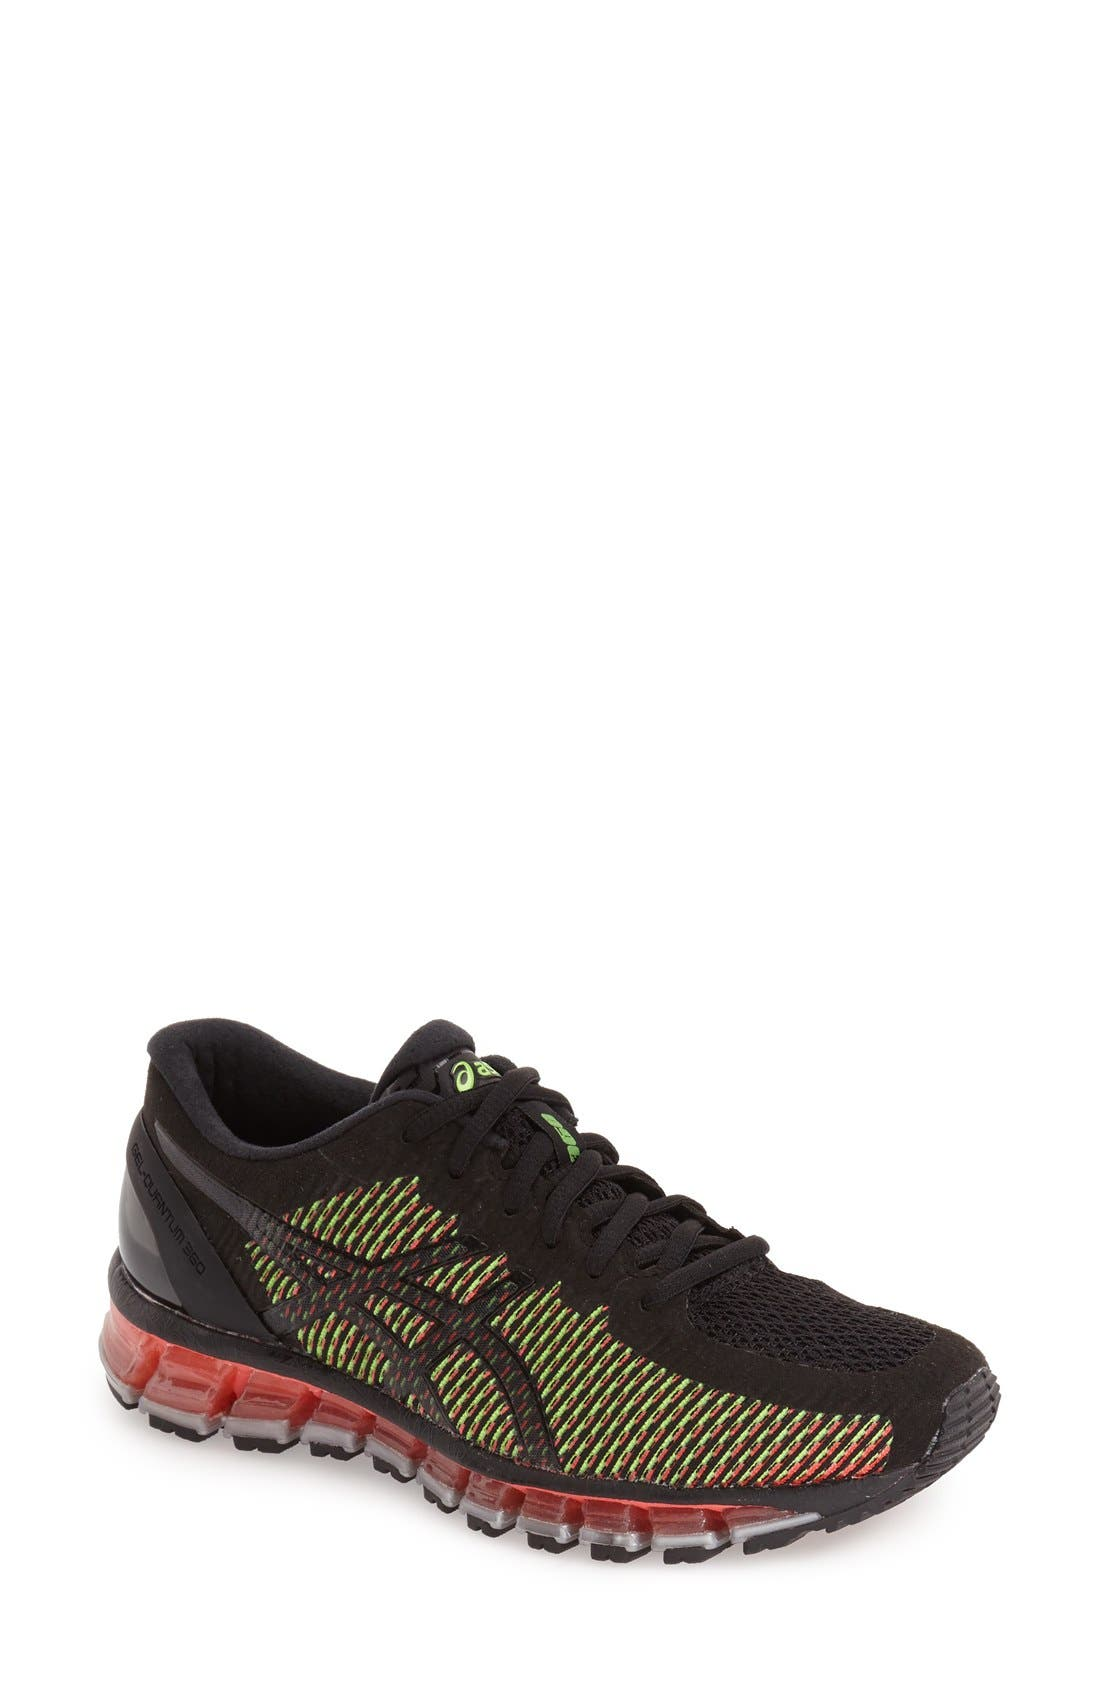 'GEL-Quantum 360' Running Shoe,                         Main,                         color, Black/ White/ Green Gecko